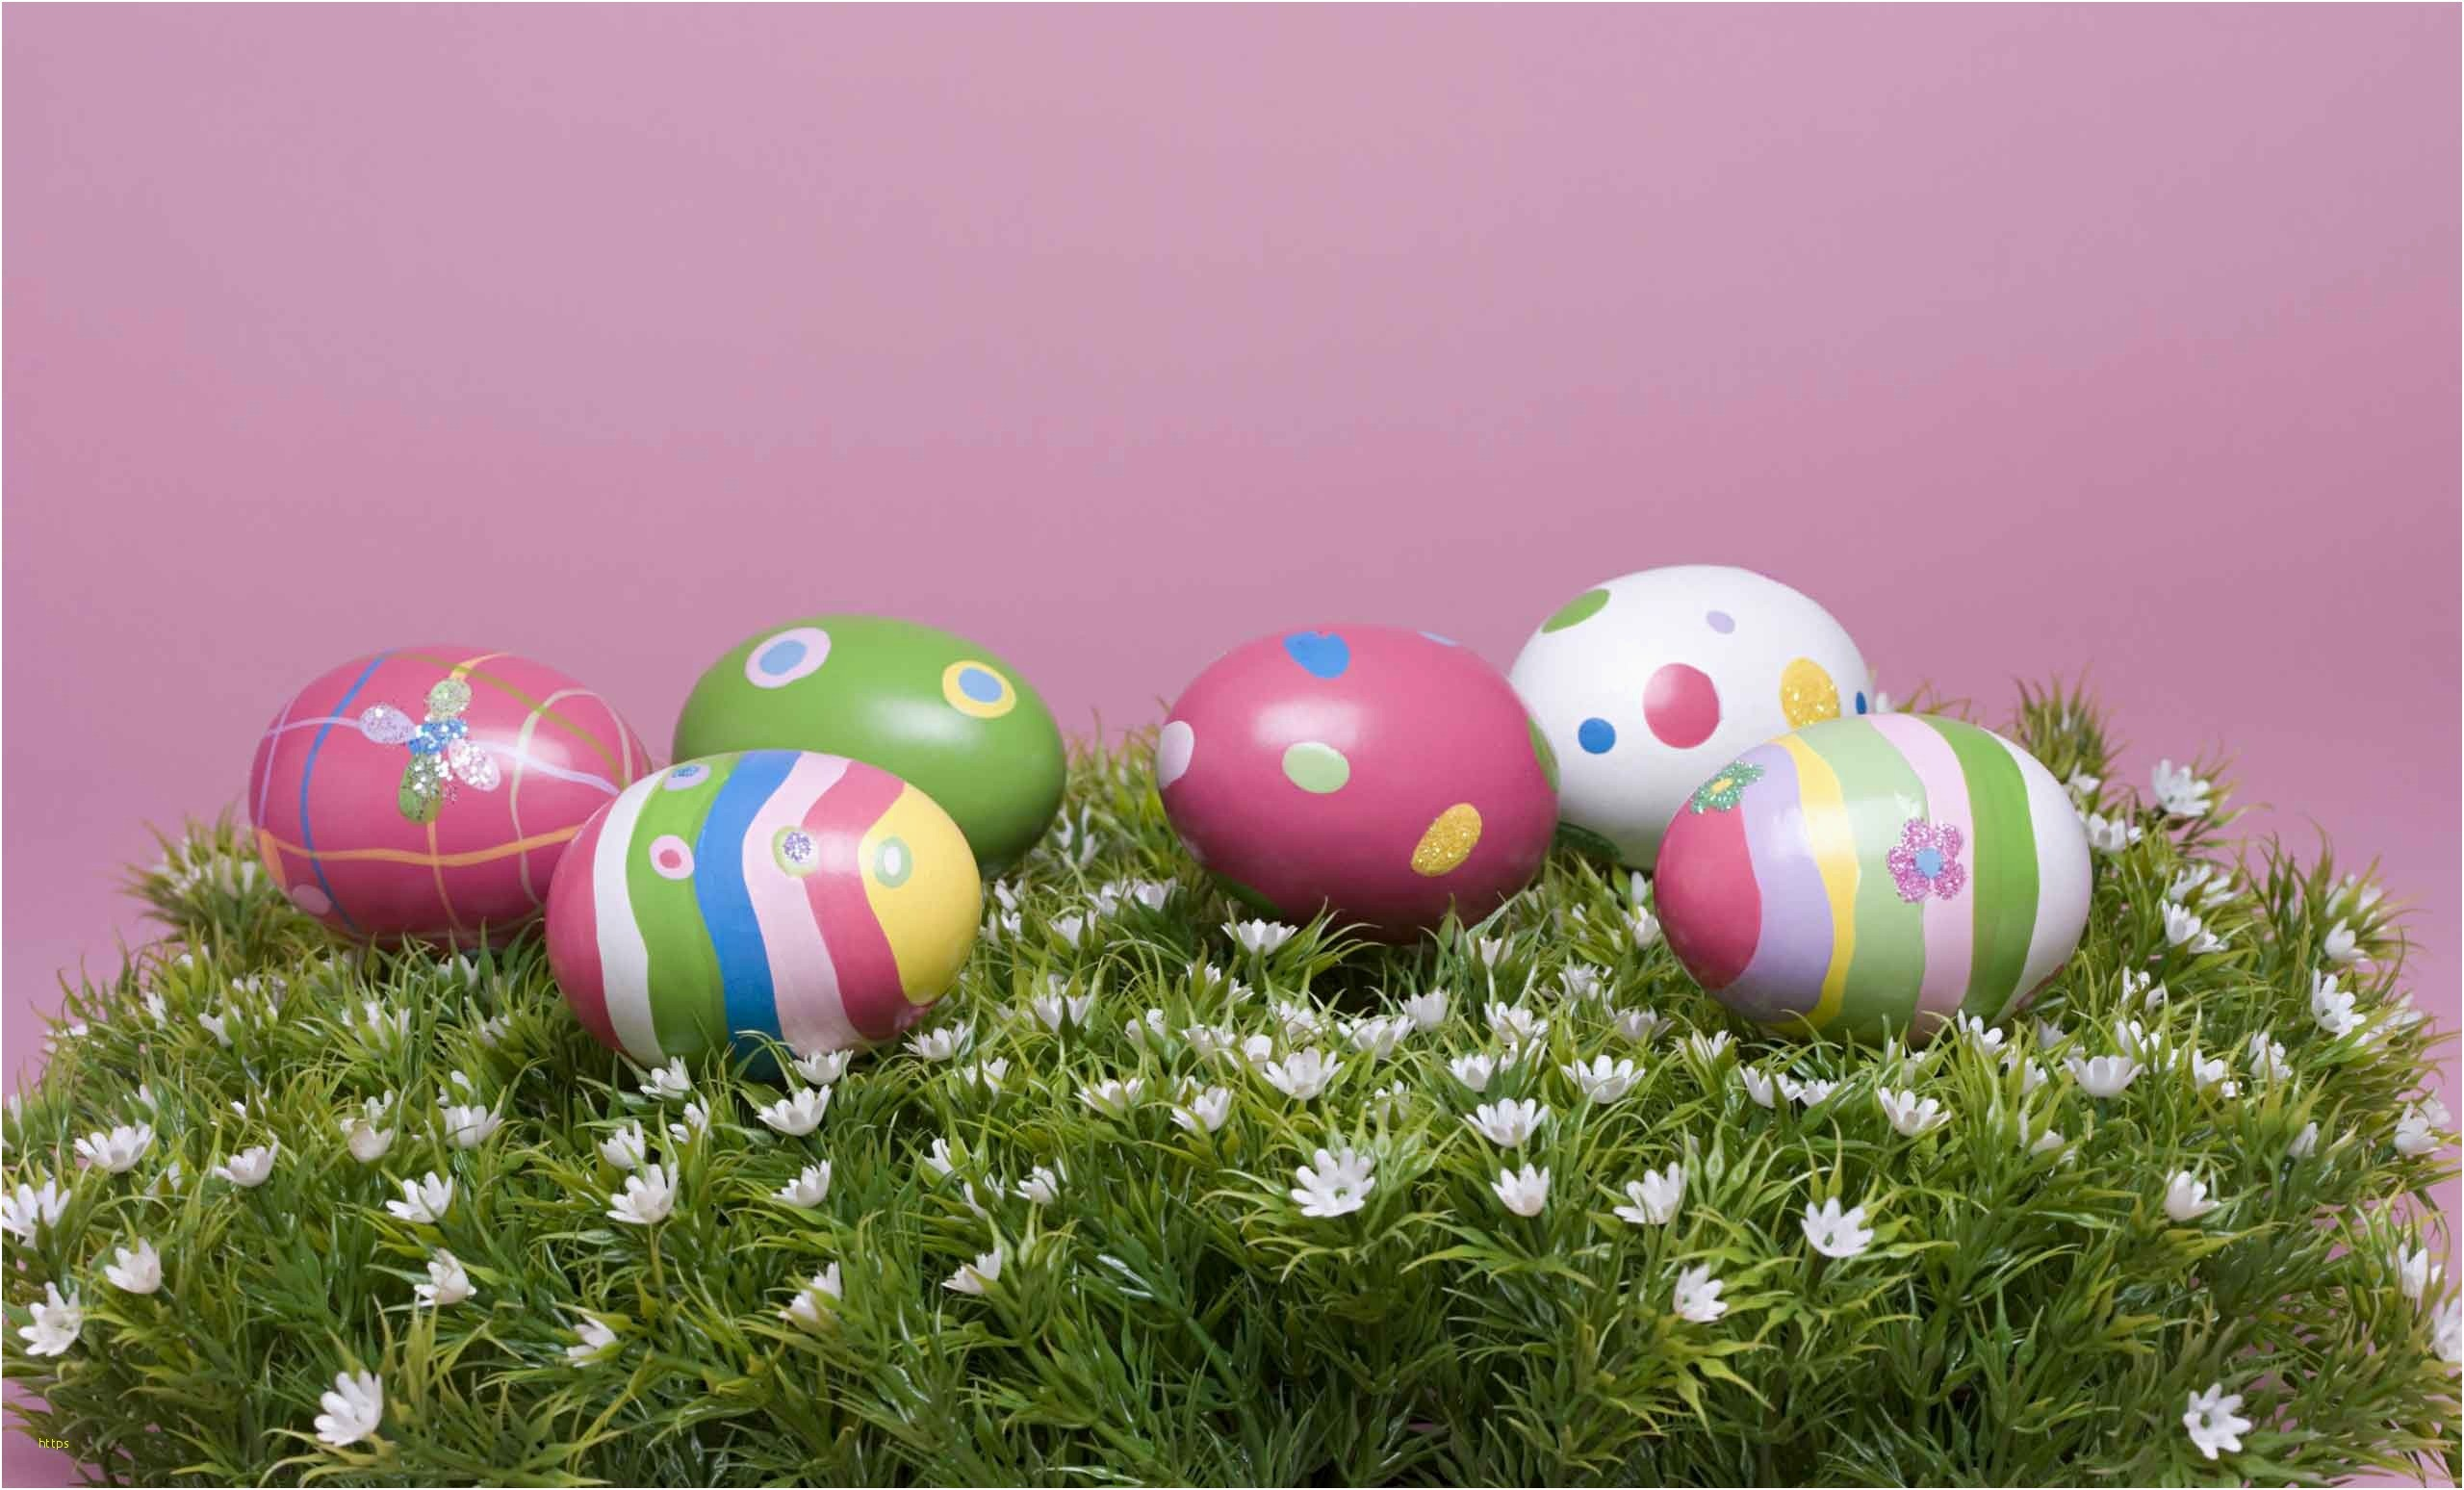 2560x1548 Free Easter Wallpaper Best Of Easter Egg Wallpapers Wallpaper Cave